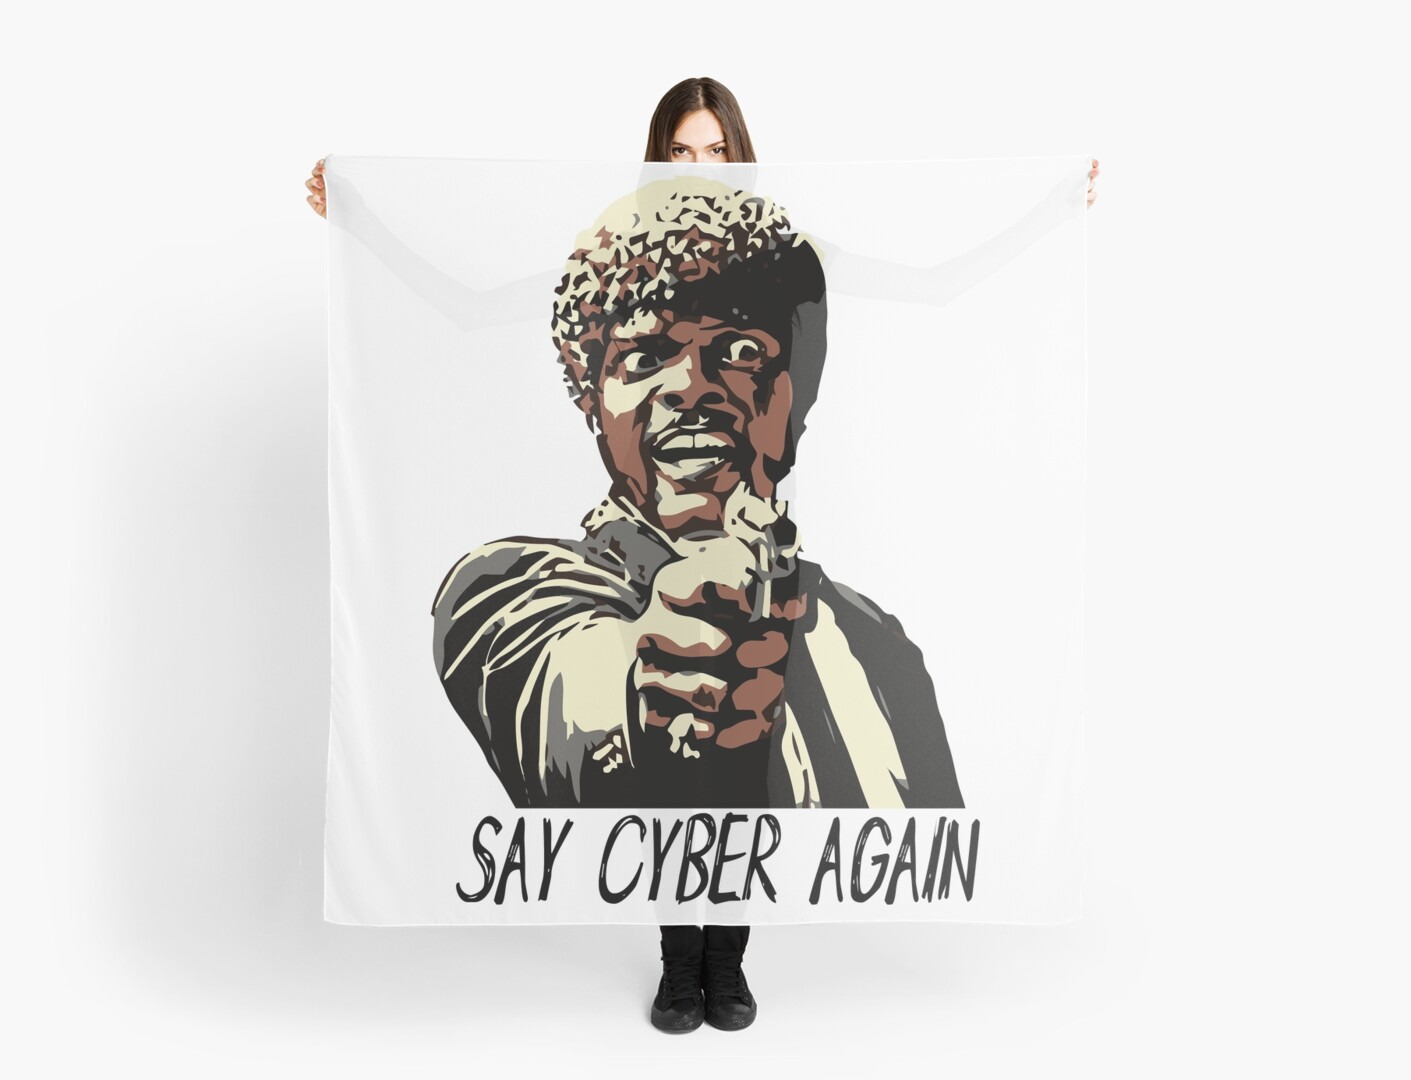 SAY CYBER AGAIN by Grant Sewell